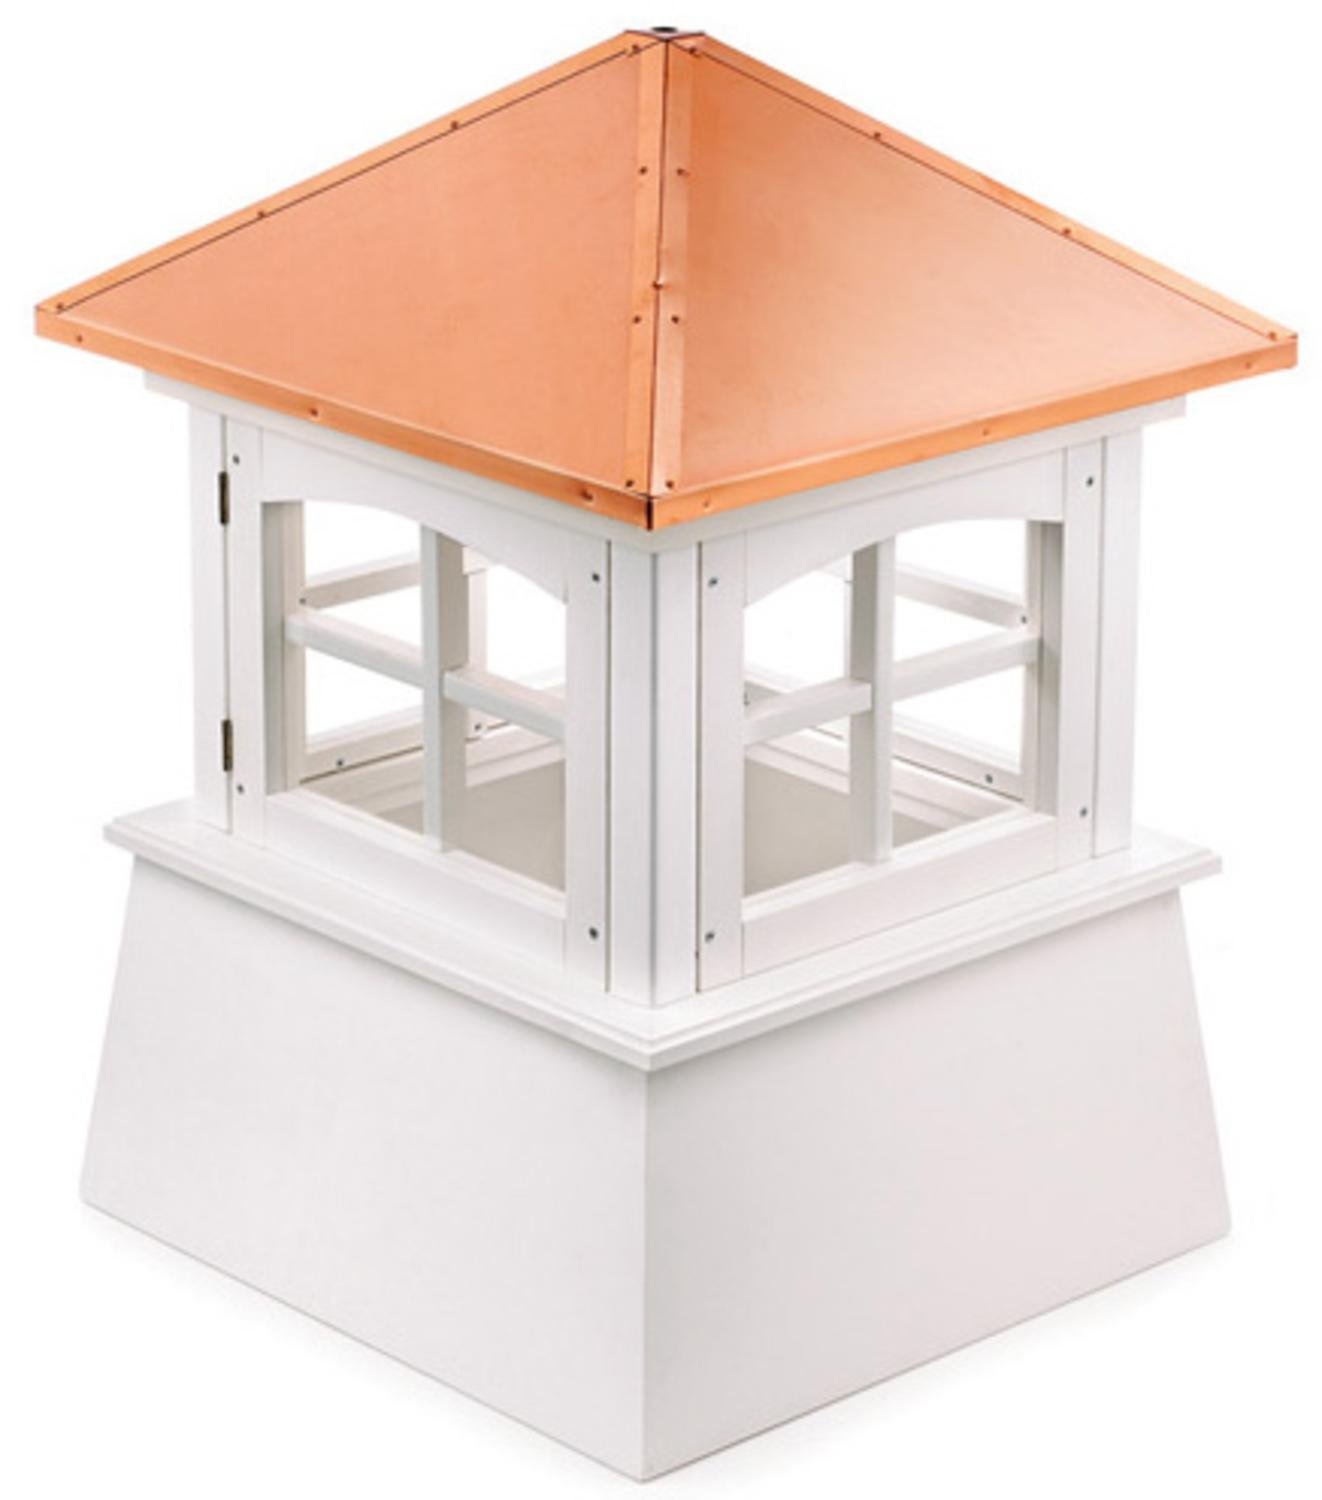 30'' Handcrafted ''Windsor'' Copper Roof Vinyl Cupola by CC Home Furnishings